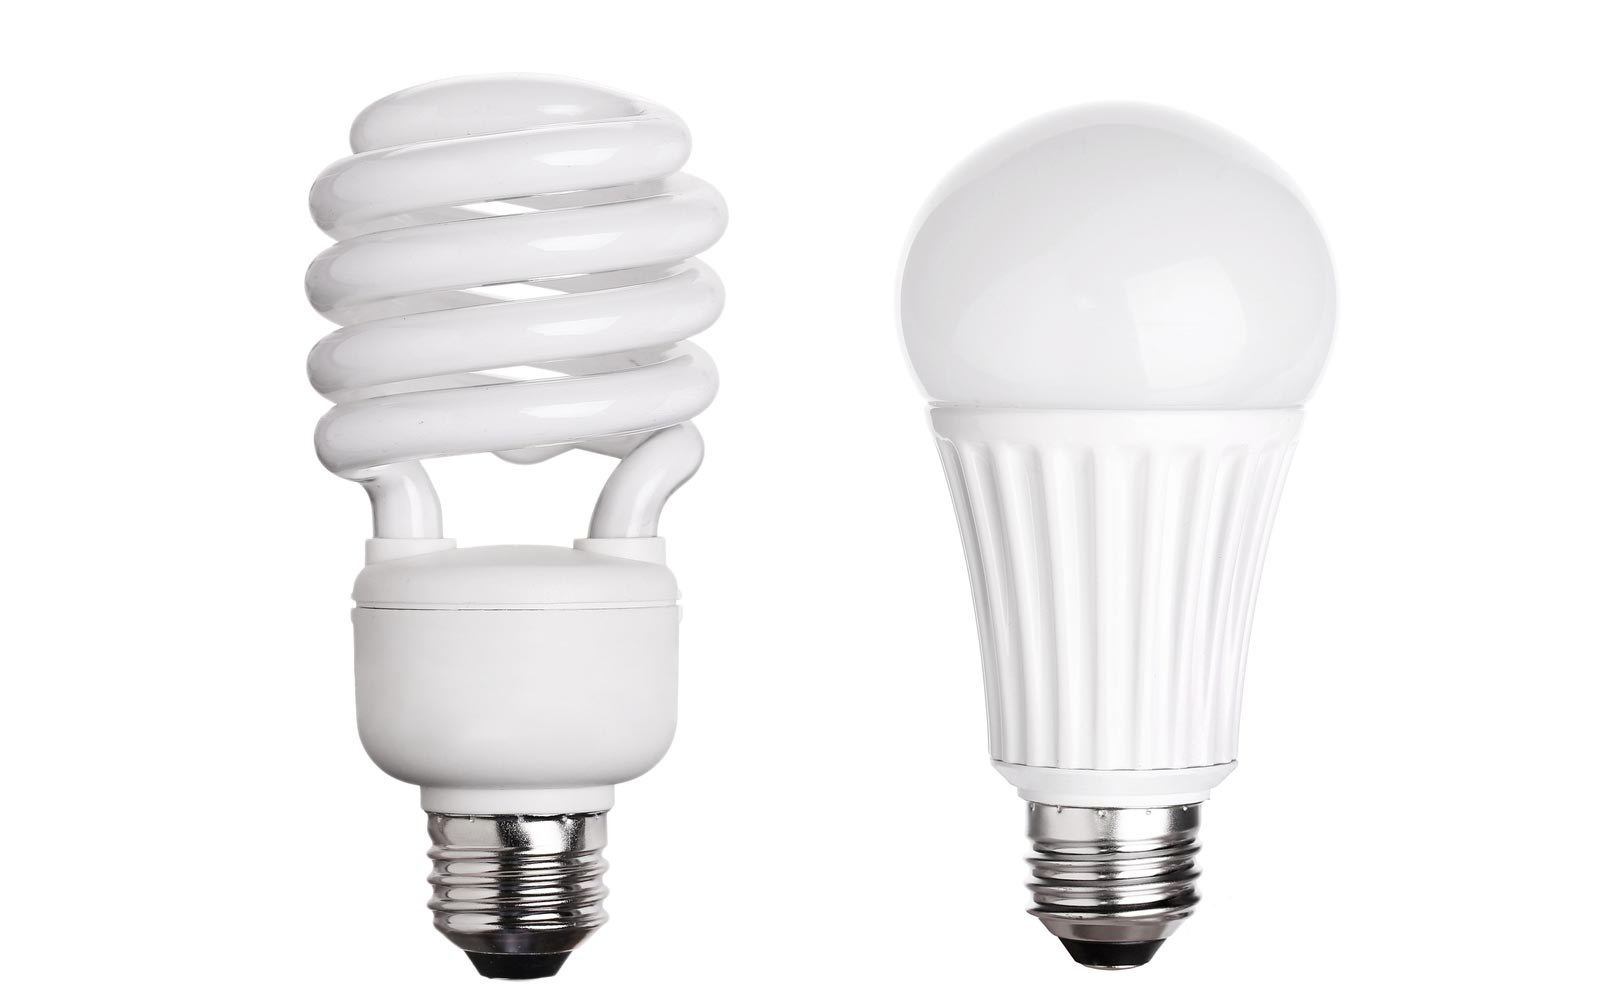 Led Lights Bad Health Cfl Vs Led Lighting Why Cfl Lights Are Believed To Cause